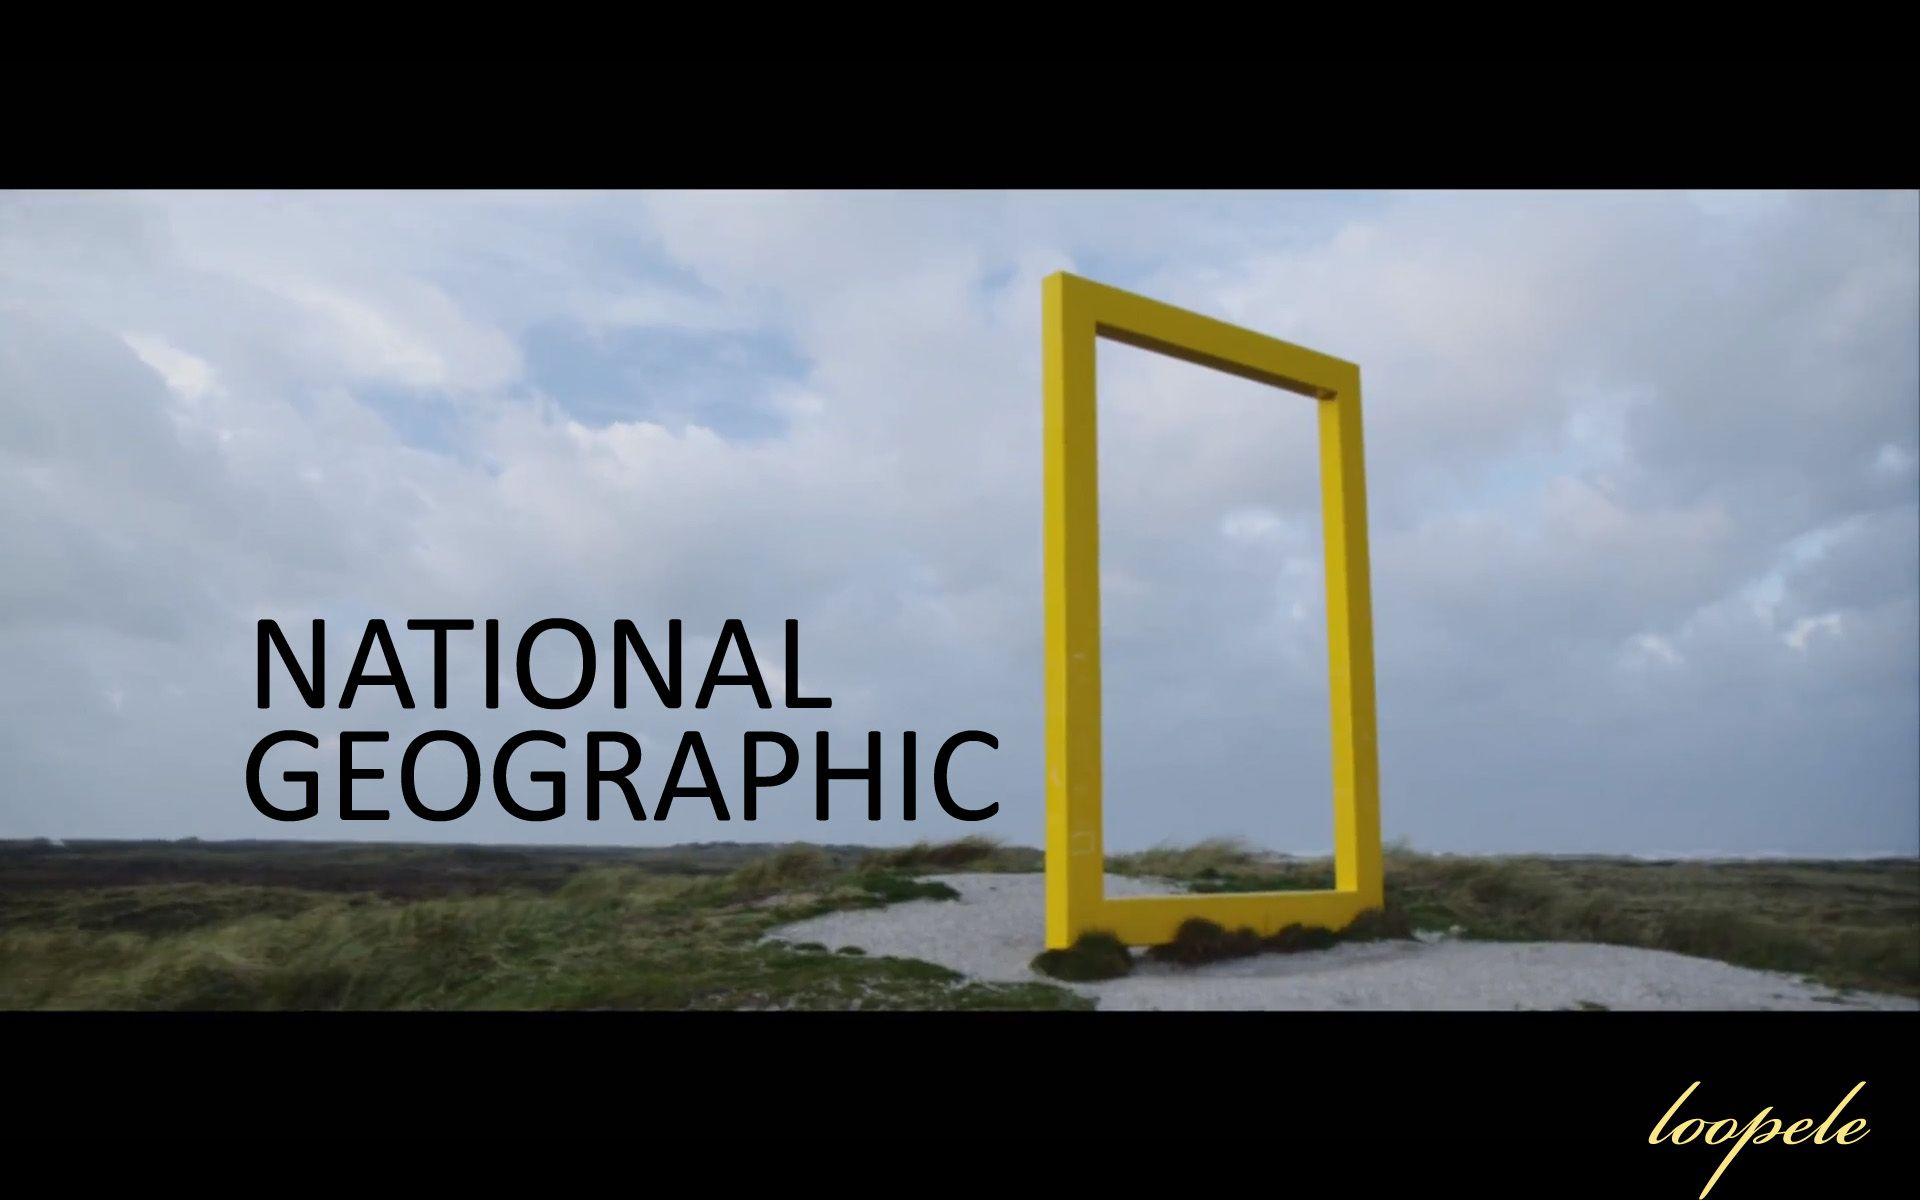 national geographic logo Google Search National